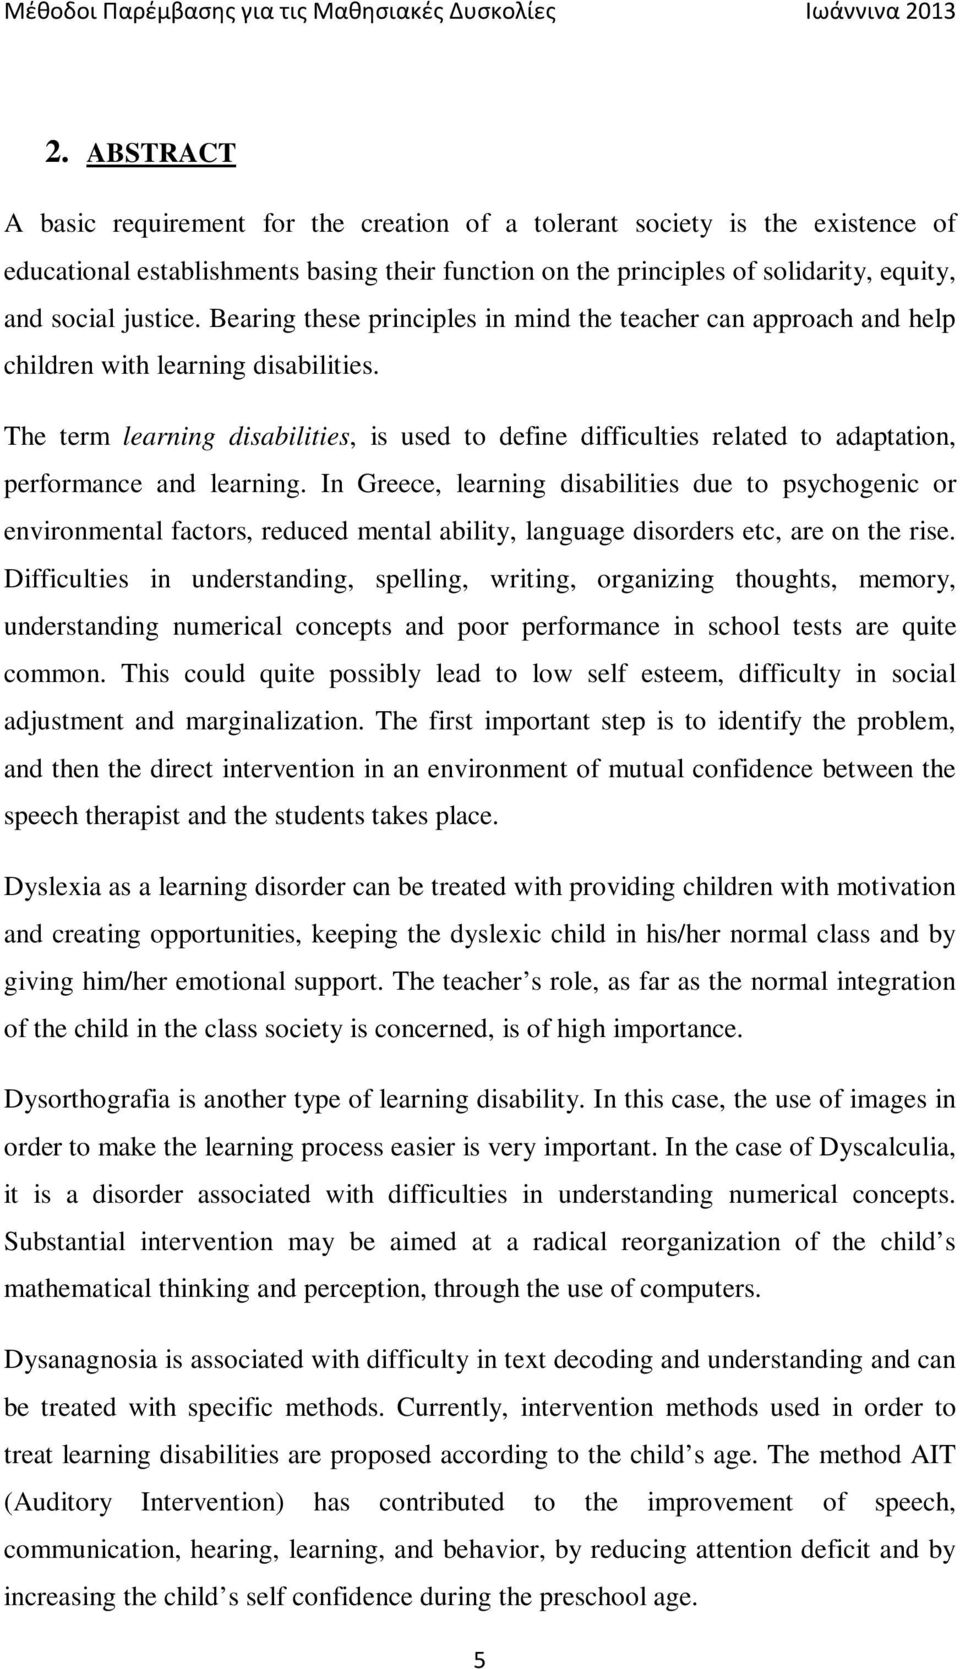 The term learning disabilities, is used to define difficulties related to adaptation, performance and learning.